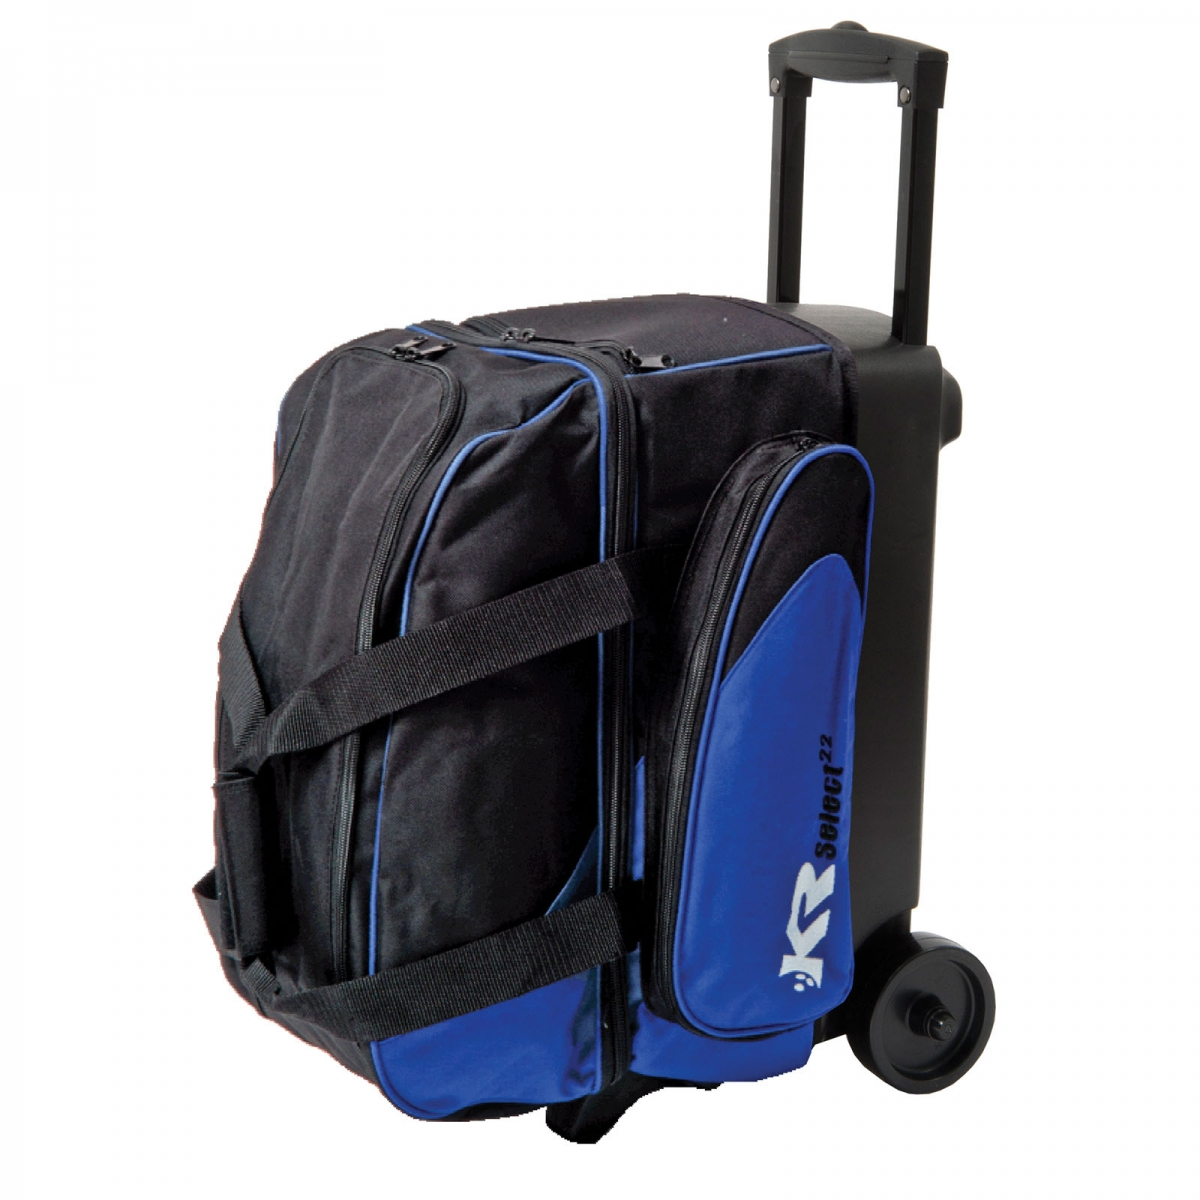 Buy 1 Ball Tote Bowling Bags with FREE SHIPPING, Low Prices & The BEST Customer Service Around - The bestyload7od.cf Difference.